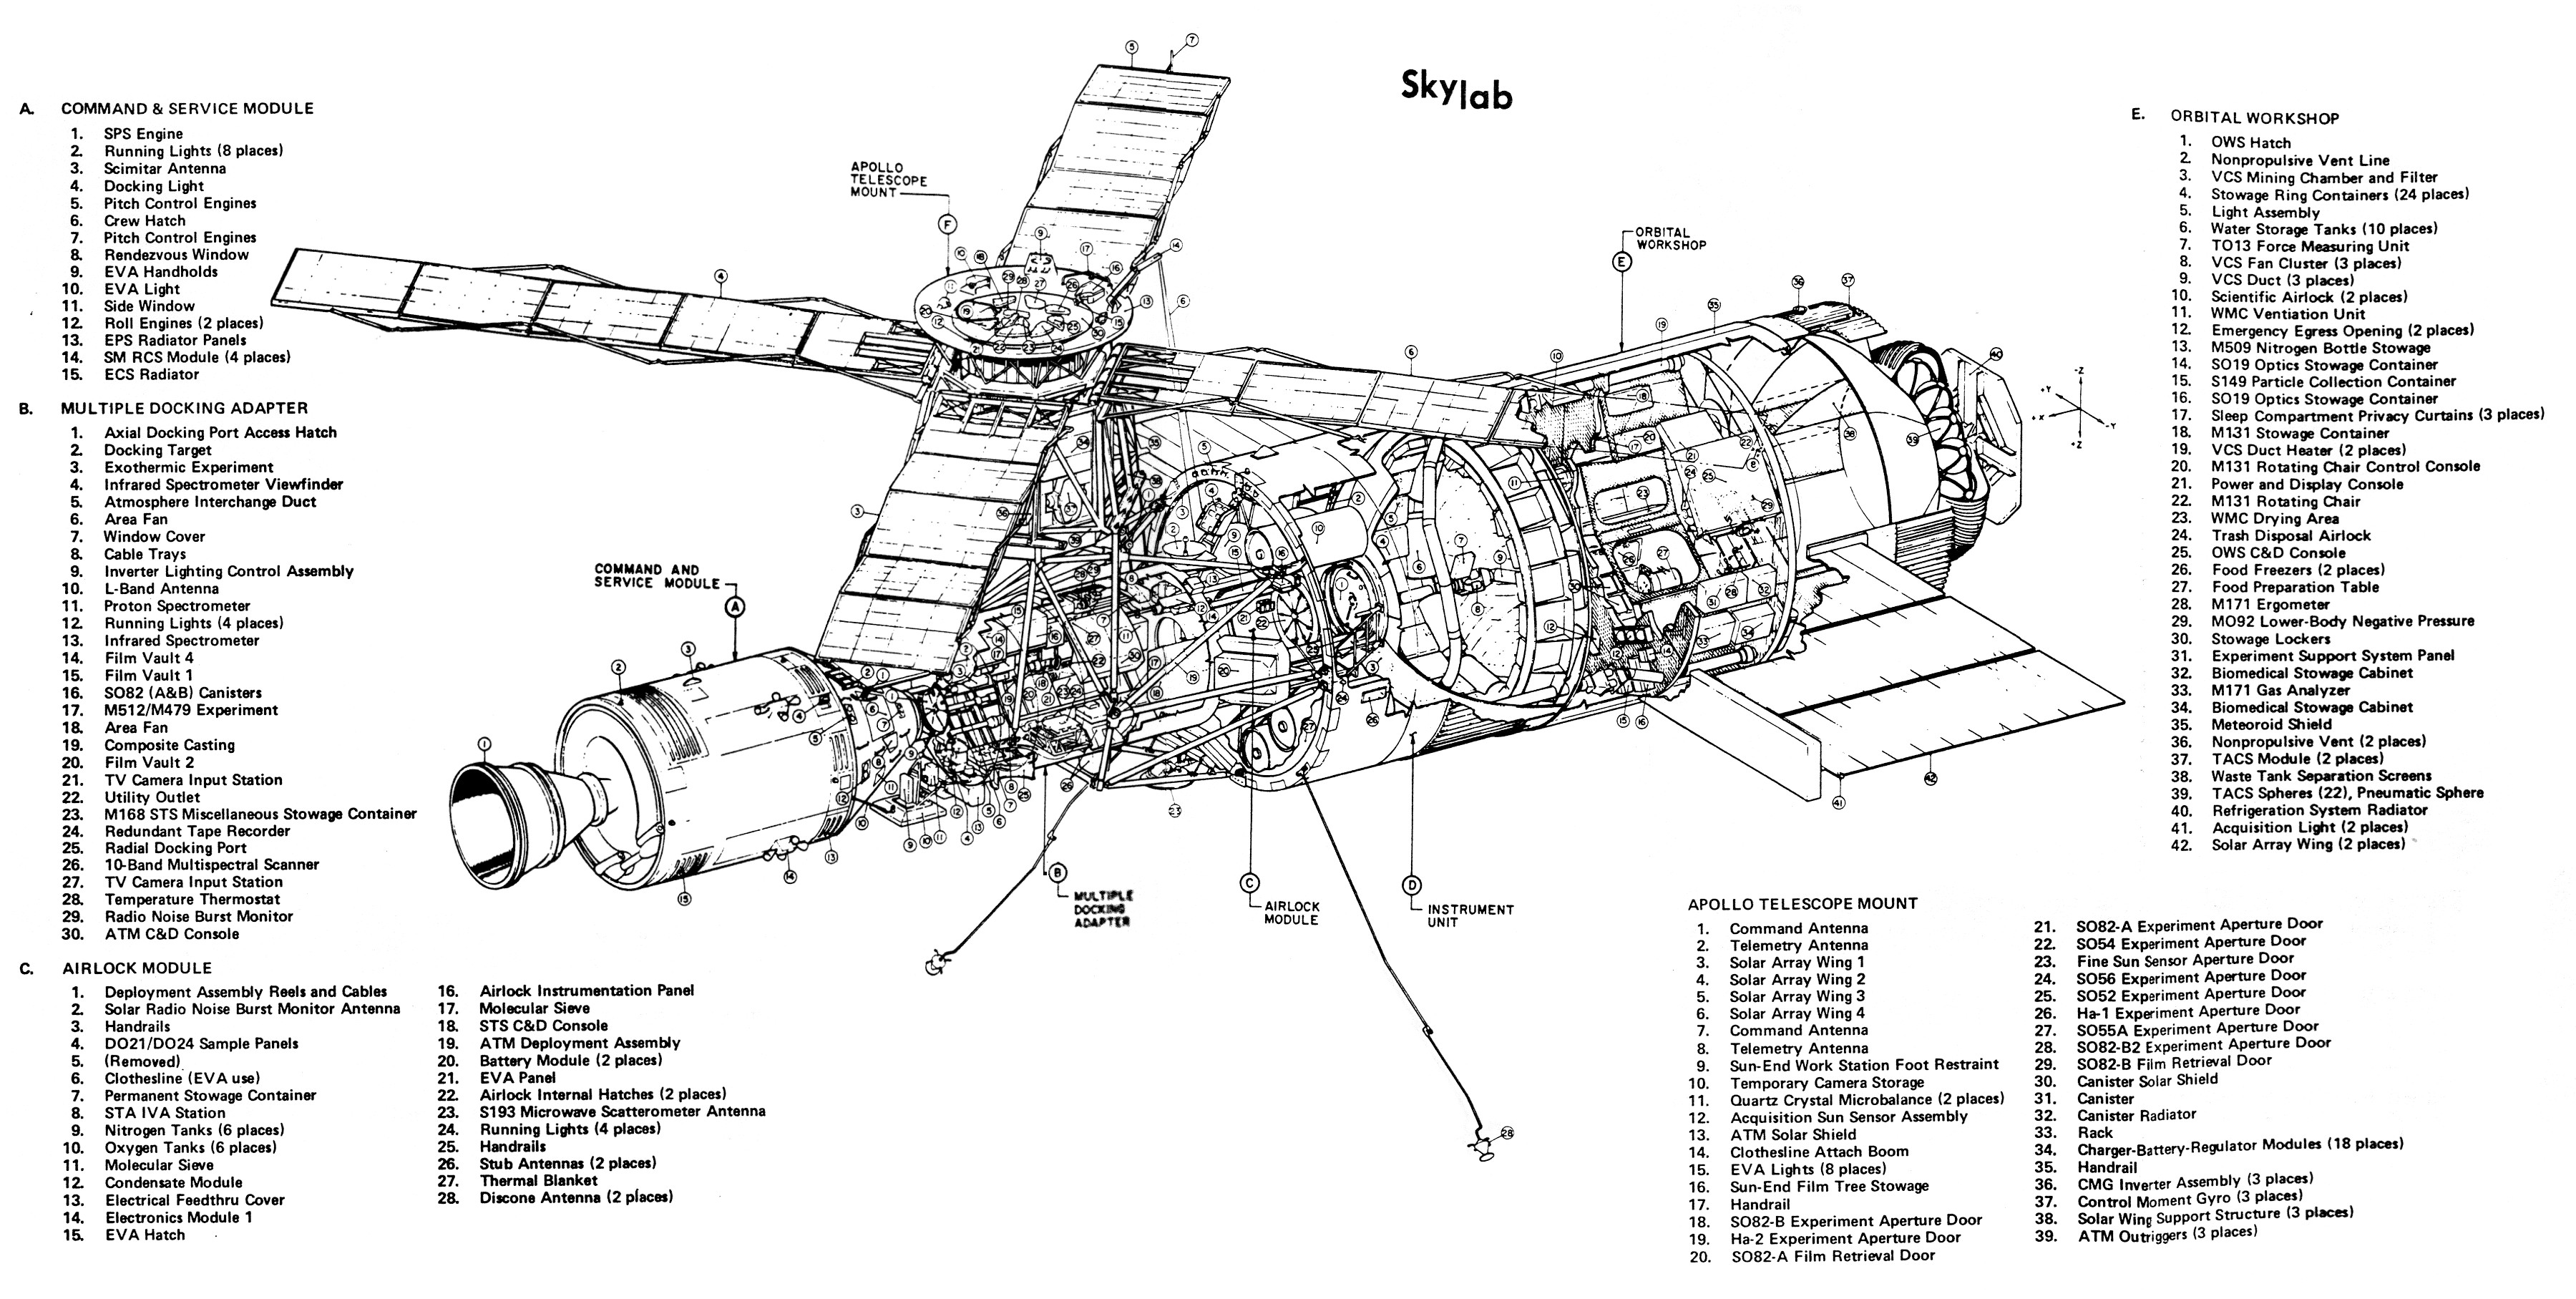 Apollo Skylab Spaceship Diagram